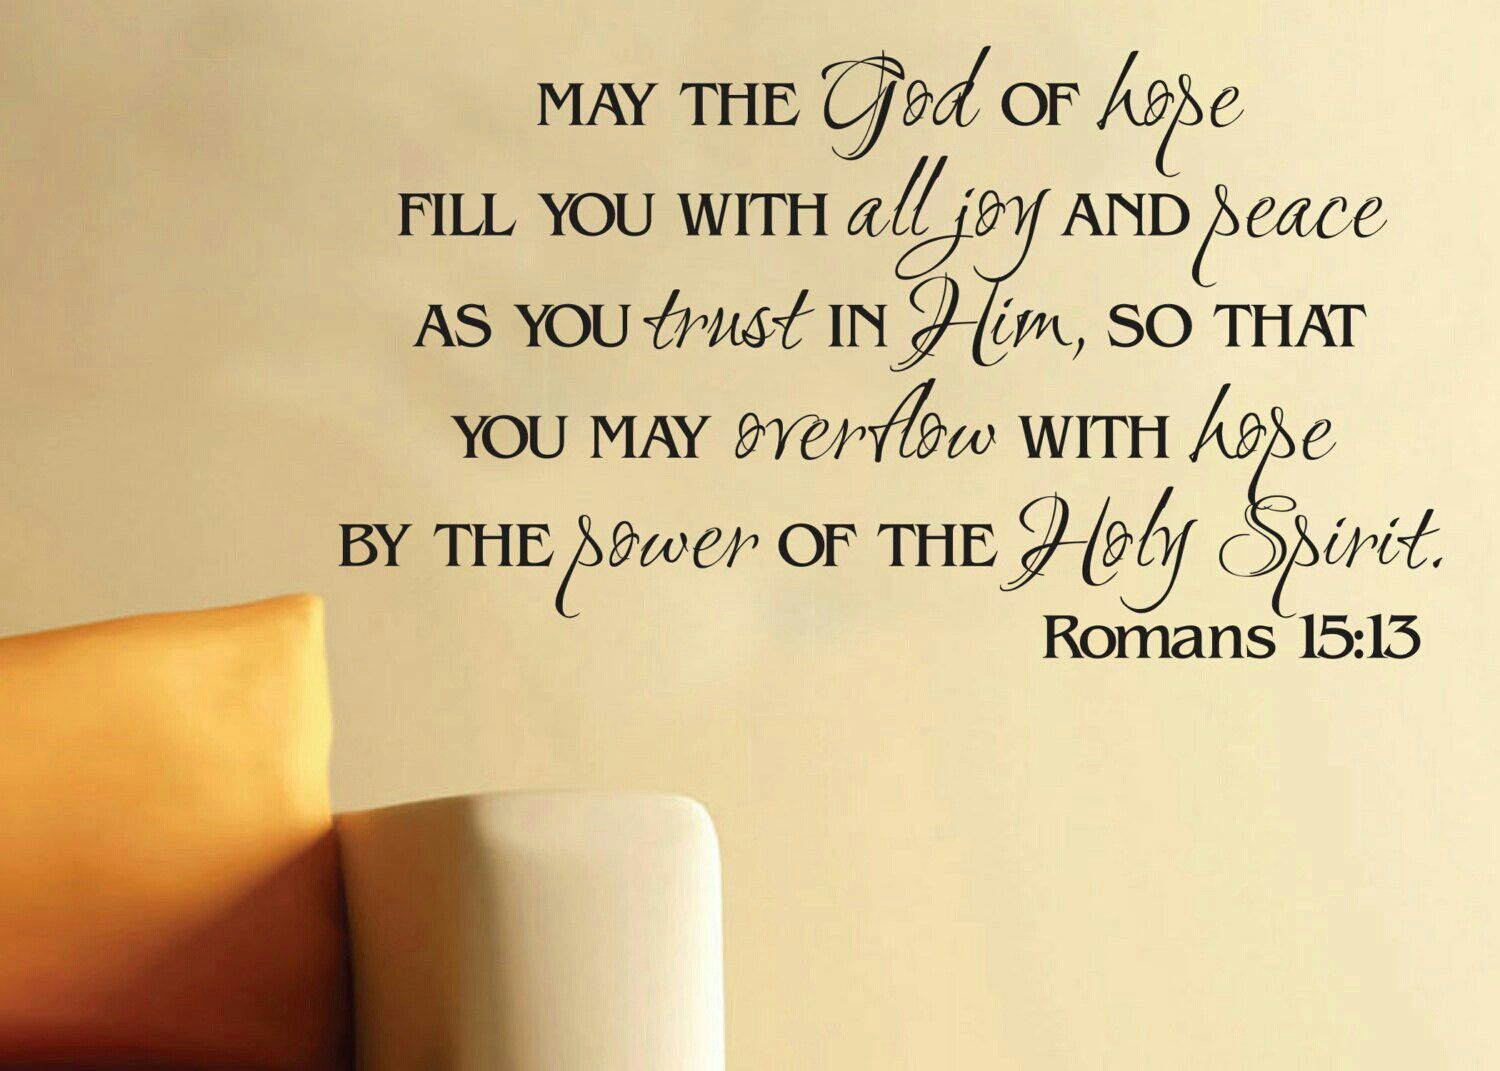 Pin by Evelyn Espiritu on Scriptures and Pictures | Pinterest ...